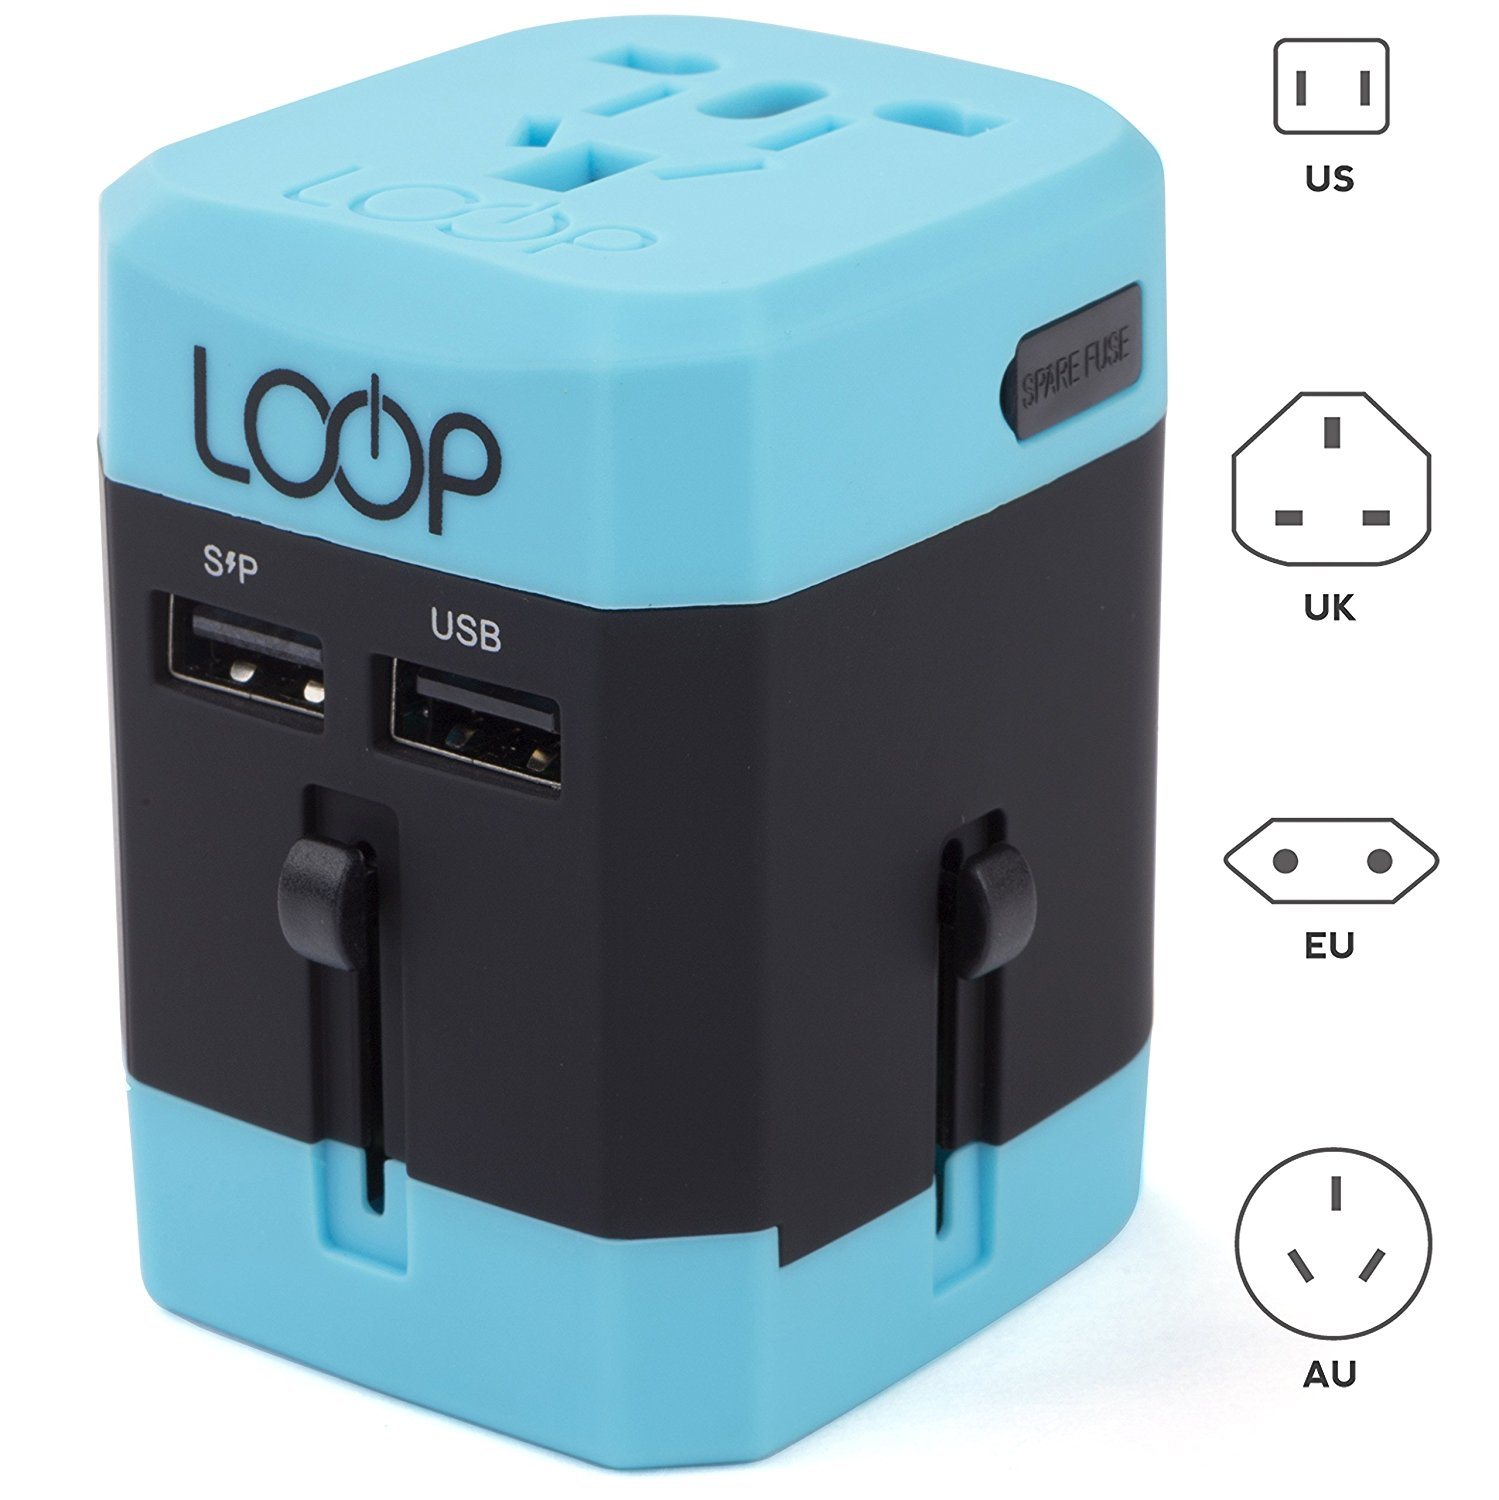 loopcharger1 image